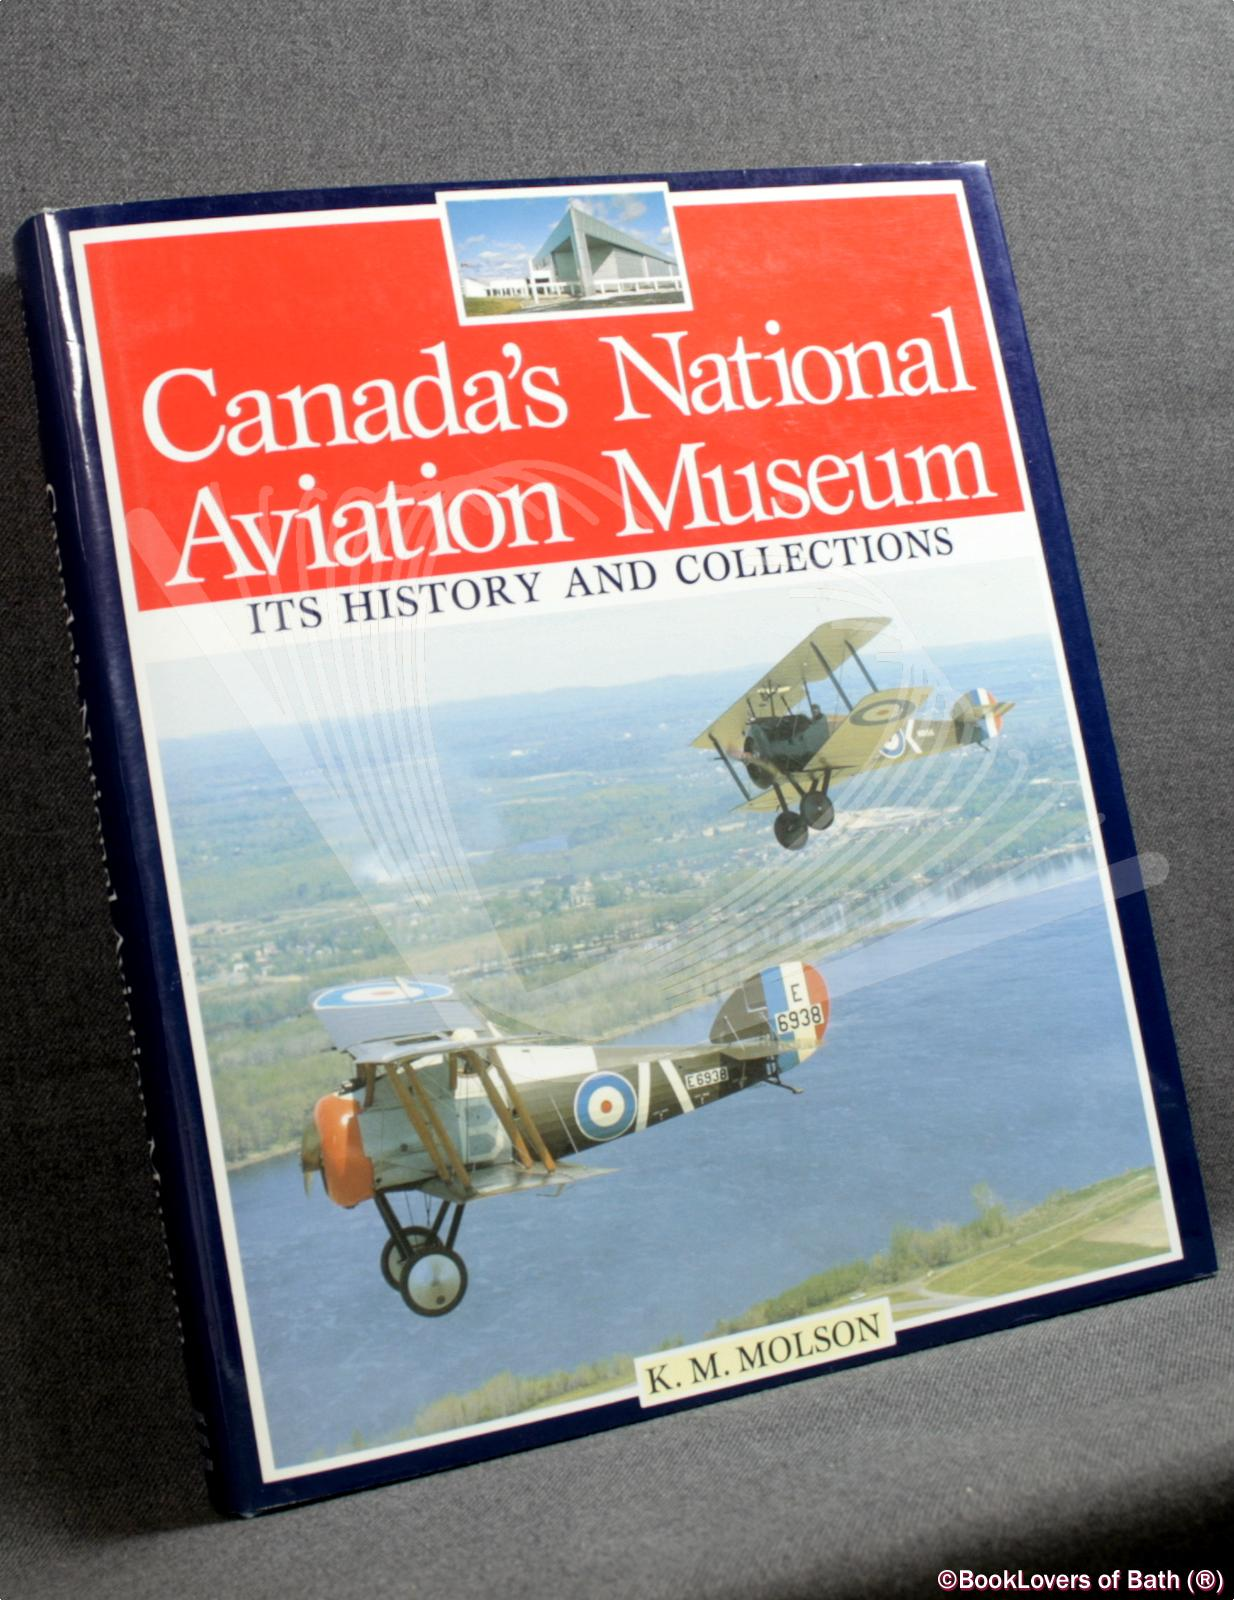 Canada's National Aviation Museum: Its History and Collections - Kenneth M. Molson with Special Sections by R. W. Bradford & P. A. Hartman